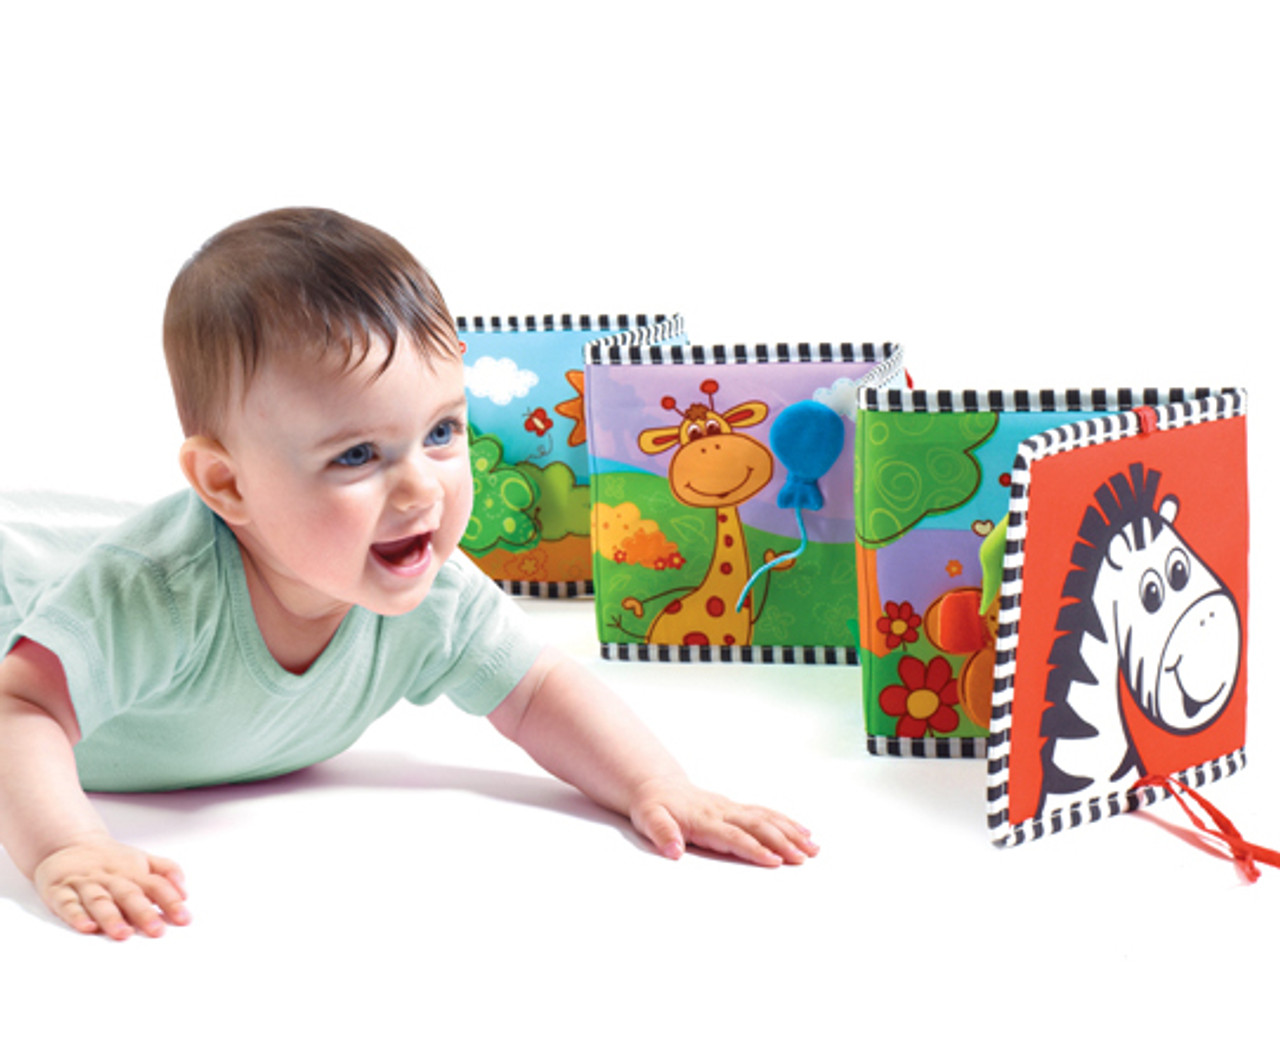 lion SOSPIRO Double-Sided First Book Baby Clip-on Book Cot /& Pram Use Babys First Double Sided Book Development Puzzle Animal Cloth Book Toy Best Gift for Baby